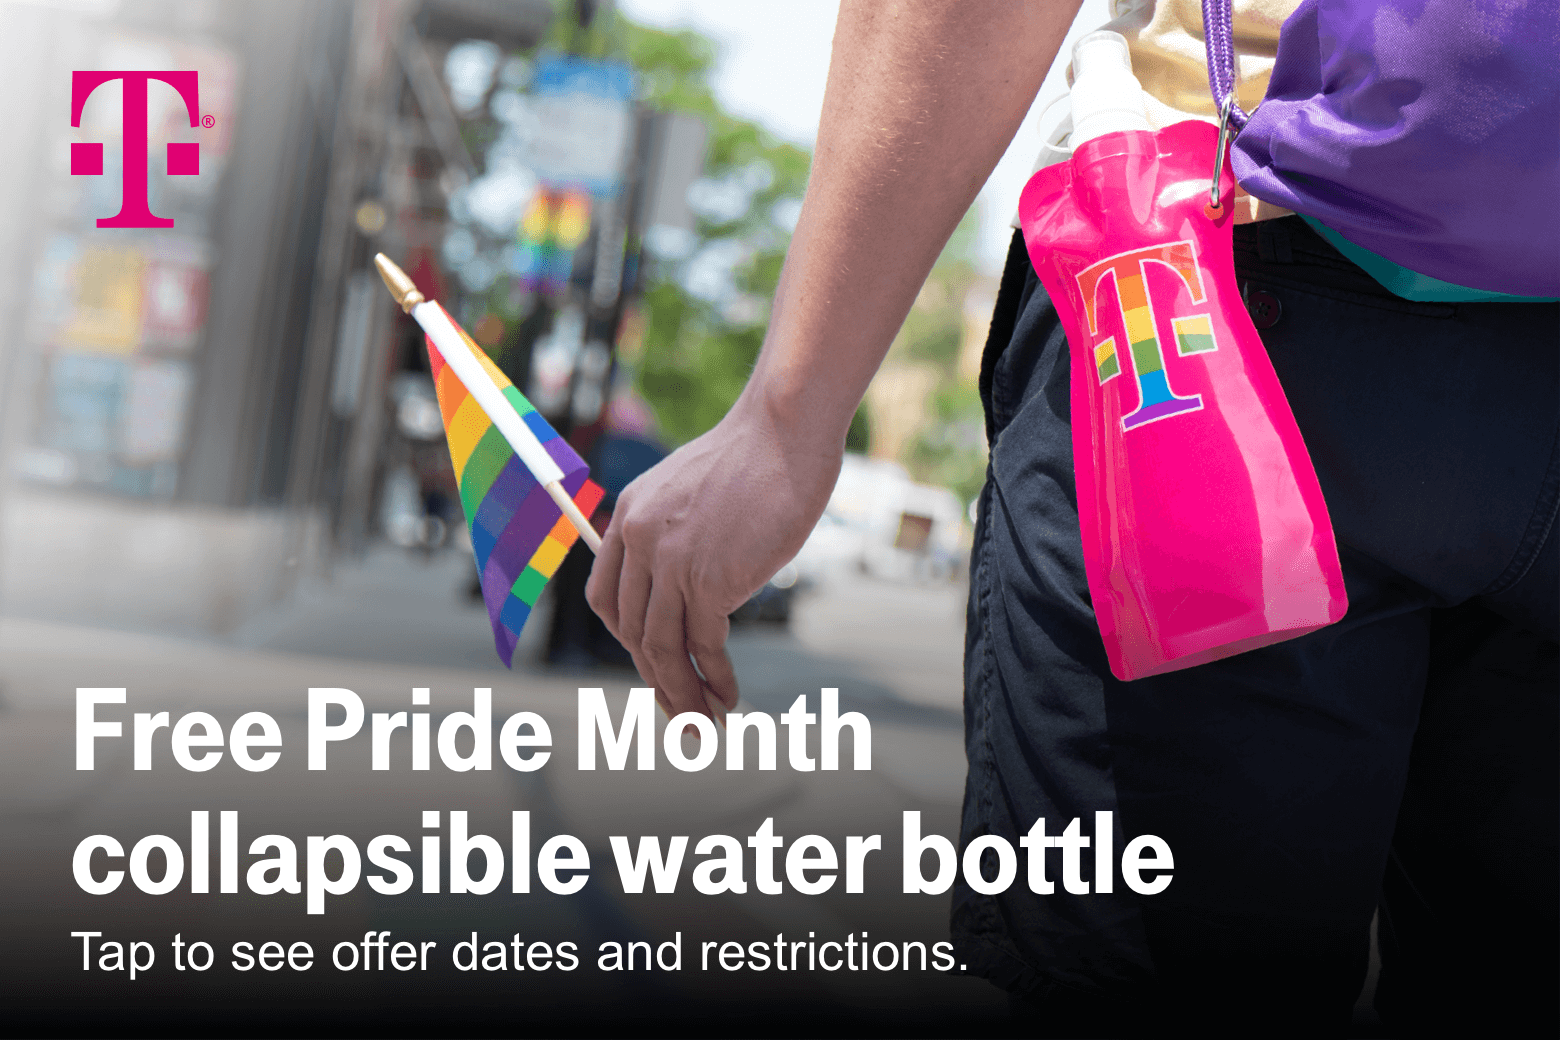 T-Mobile. Free Pride Month collapsible water bottle. Tap to see offer dates and restrictions.